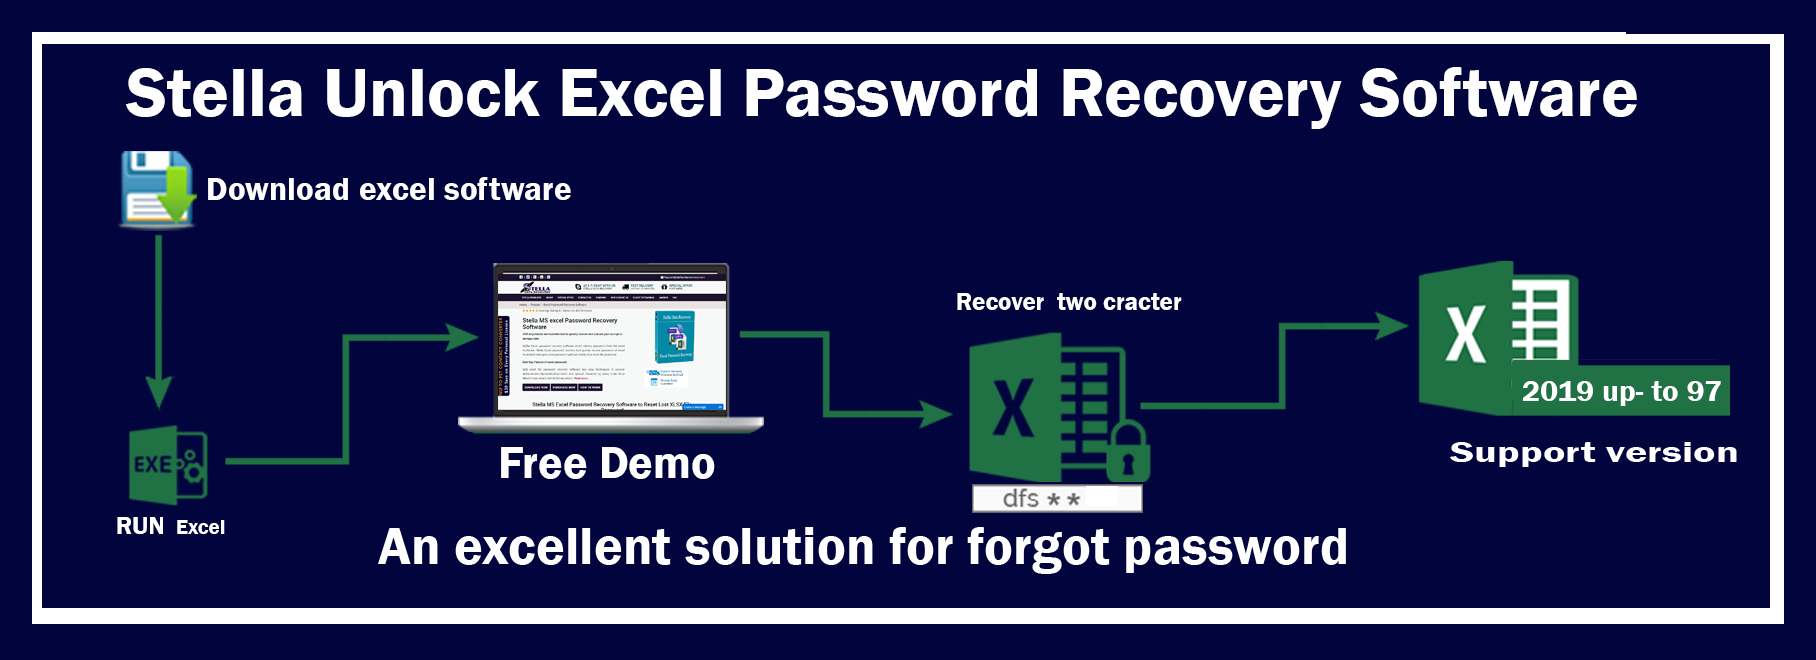 Stella Data Recovery (SDR) | excel password recovery in 2019